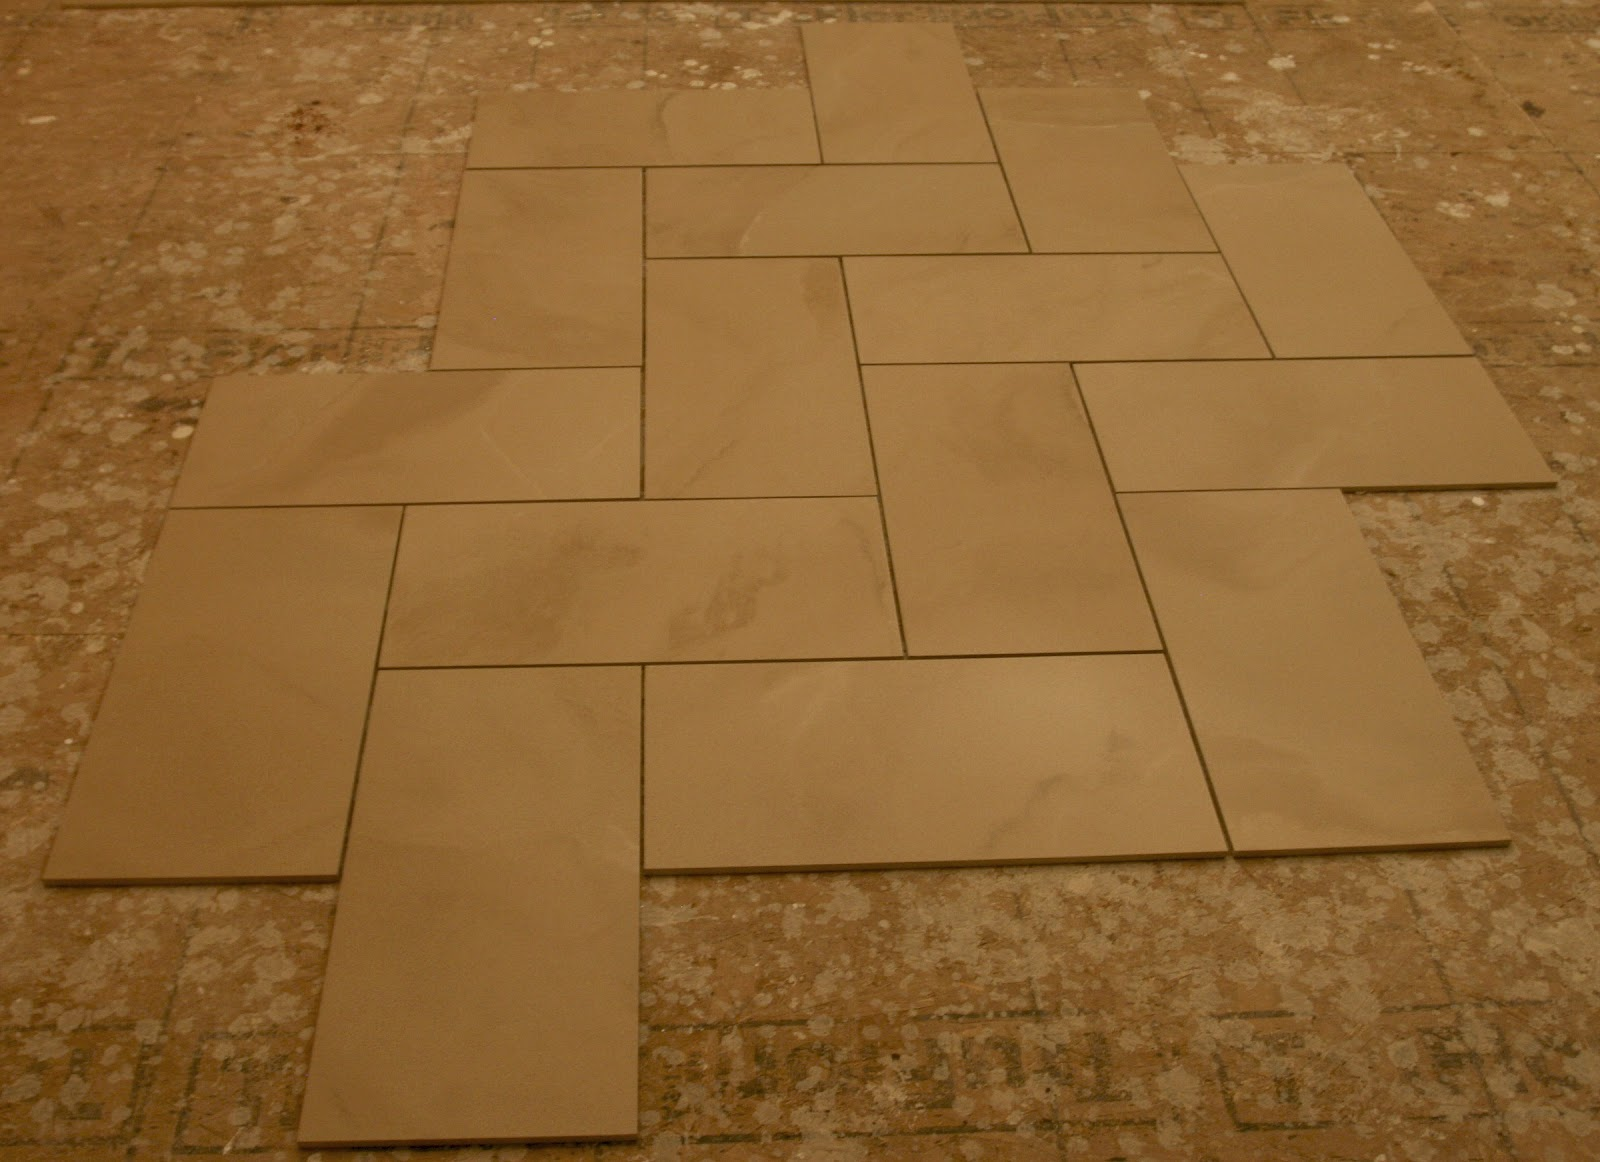 Different Floor Tile Layout Patterns Trend Home Design And Decor